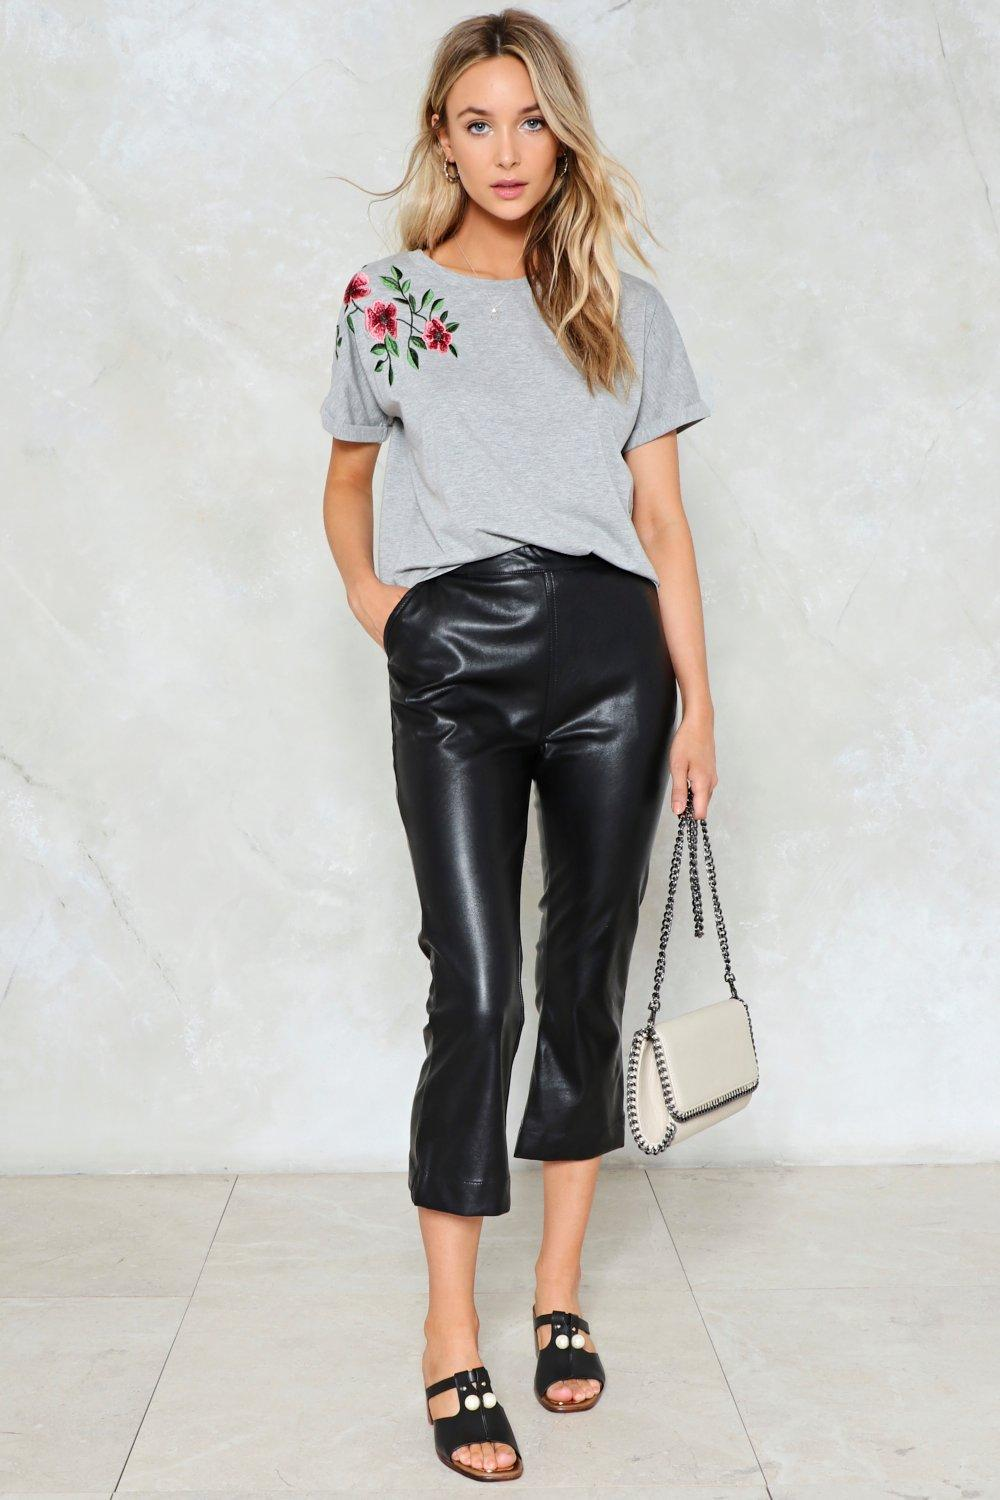 ad1025de Leaf Me Alone Embroidered Tee | Shop Clothes at Nasty Gal!